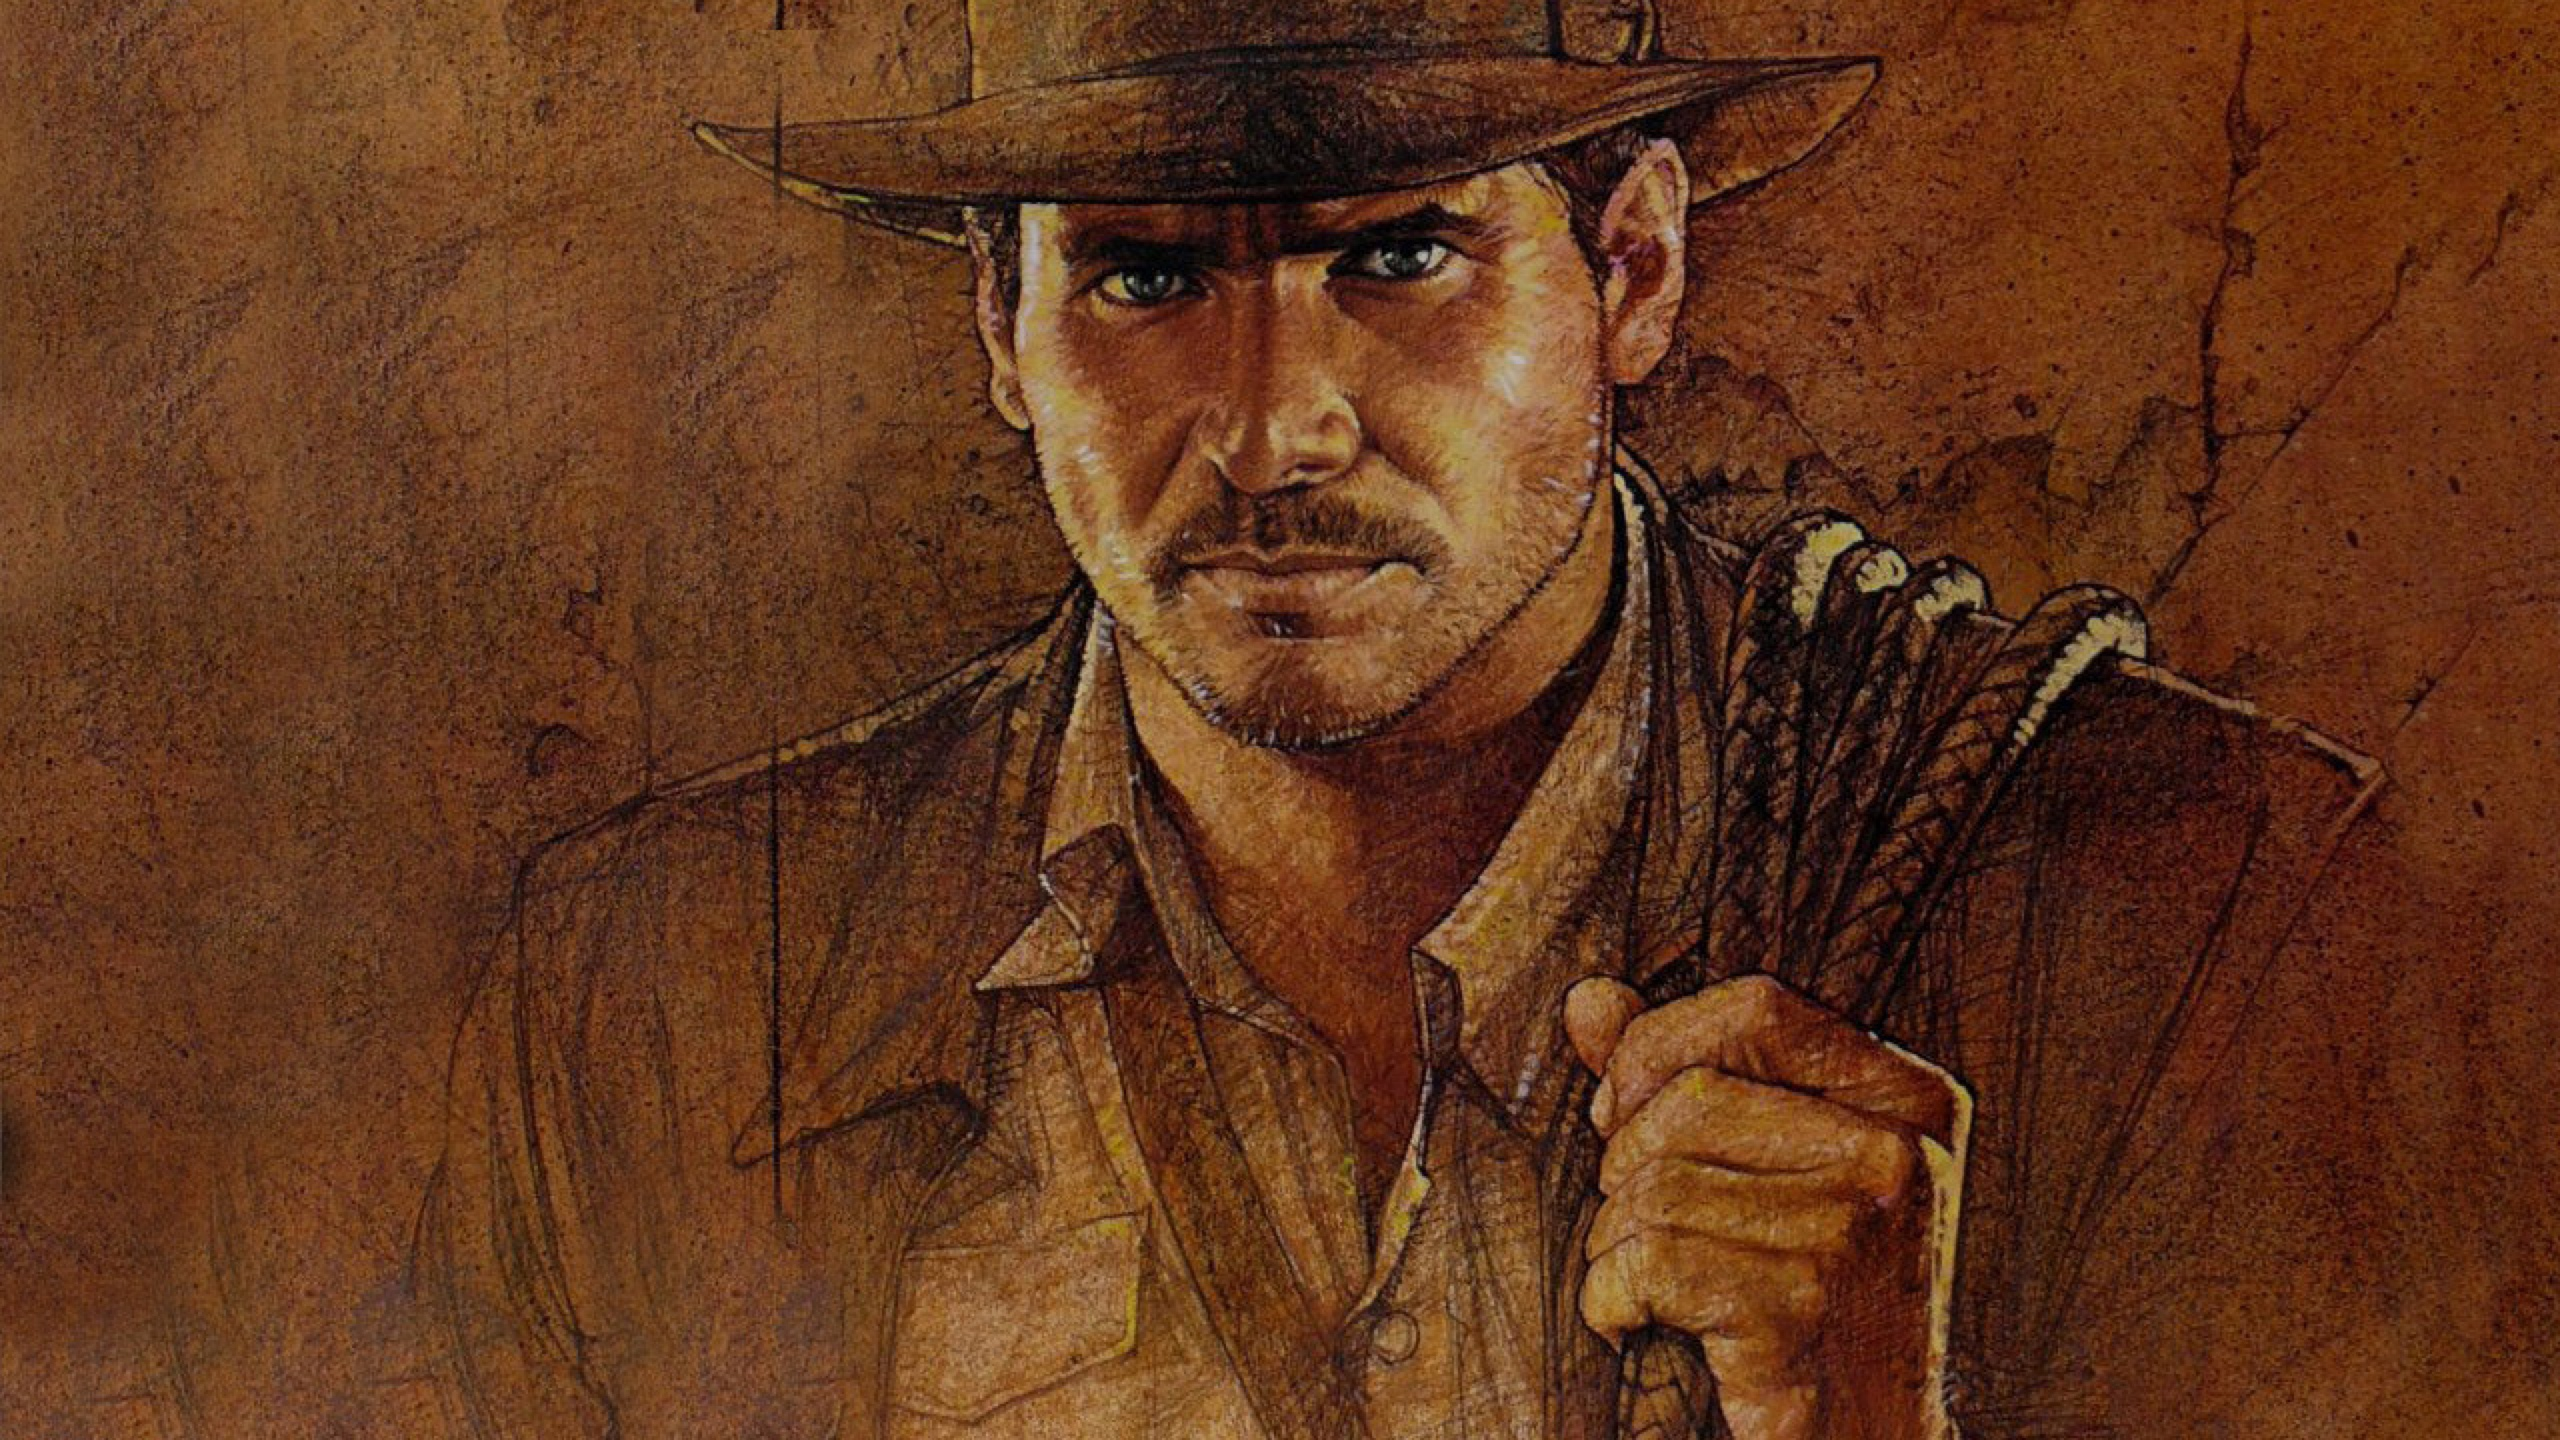 Is Disney Planning A Cross-Platform Indiana Jones Universe?